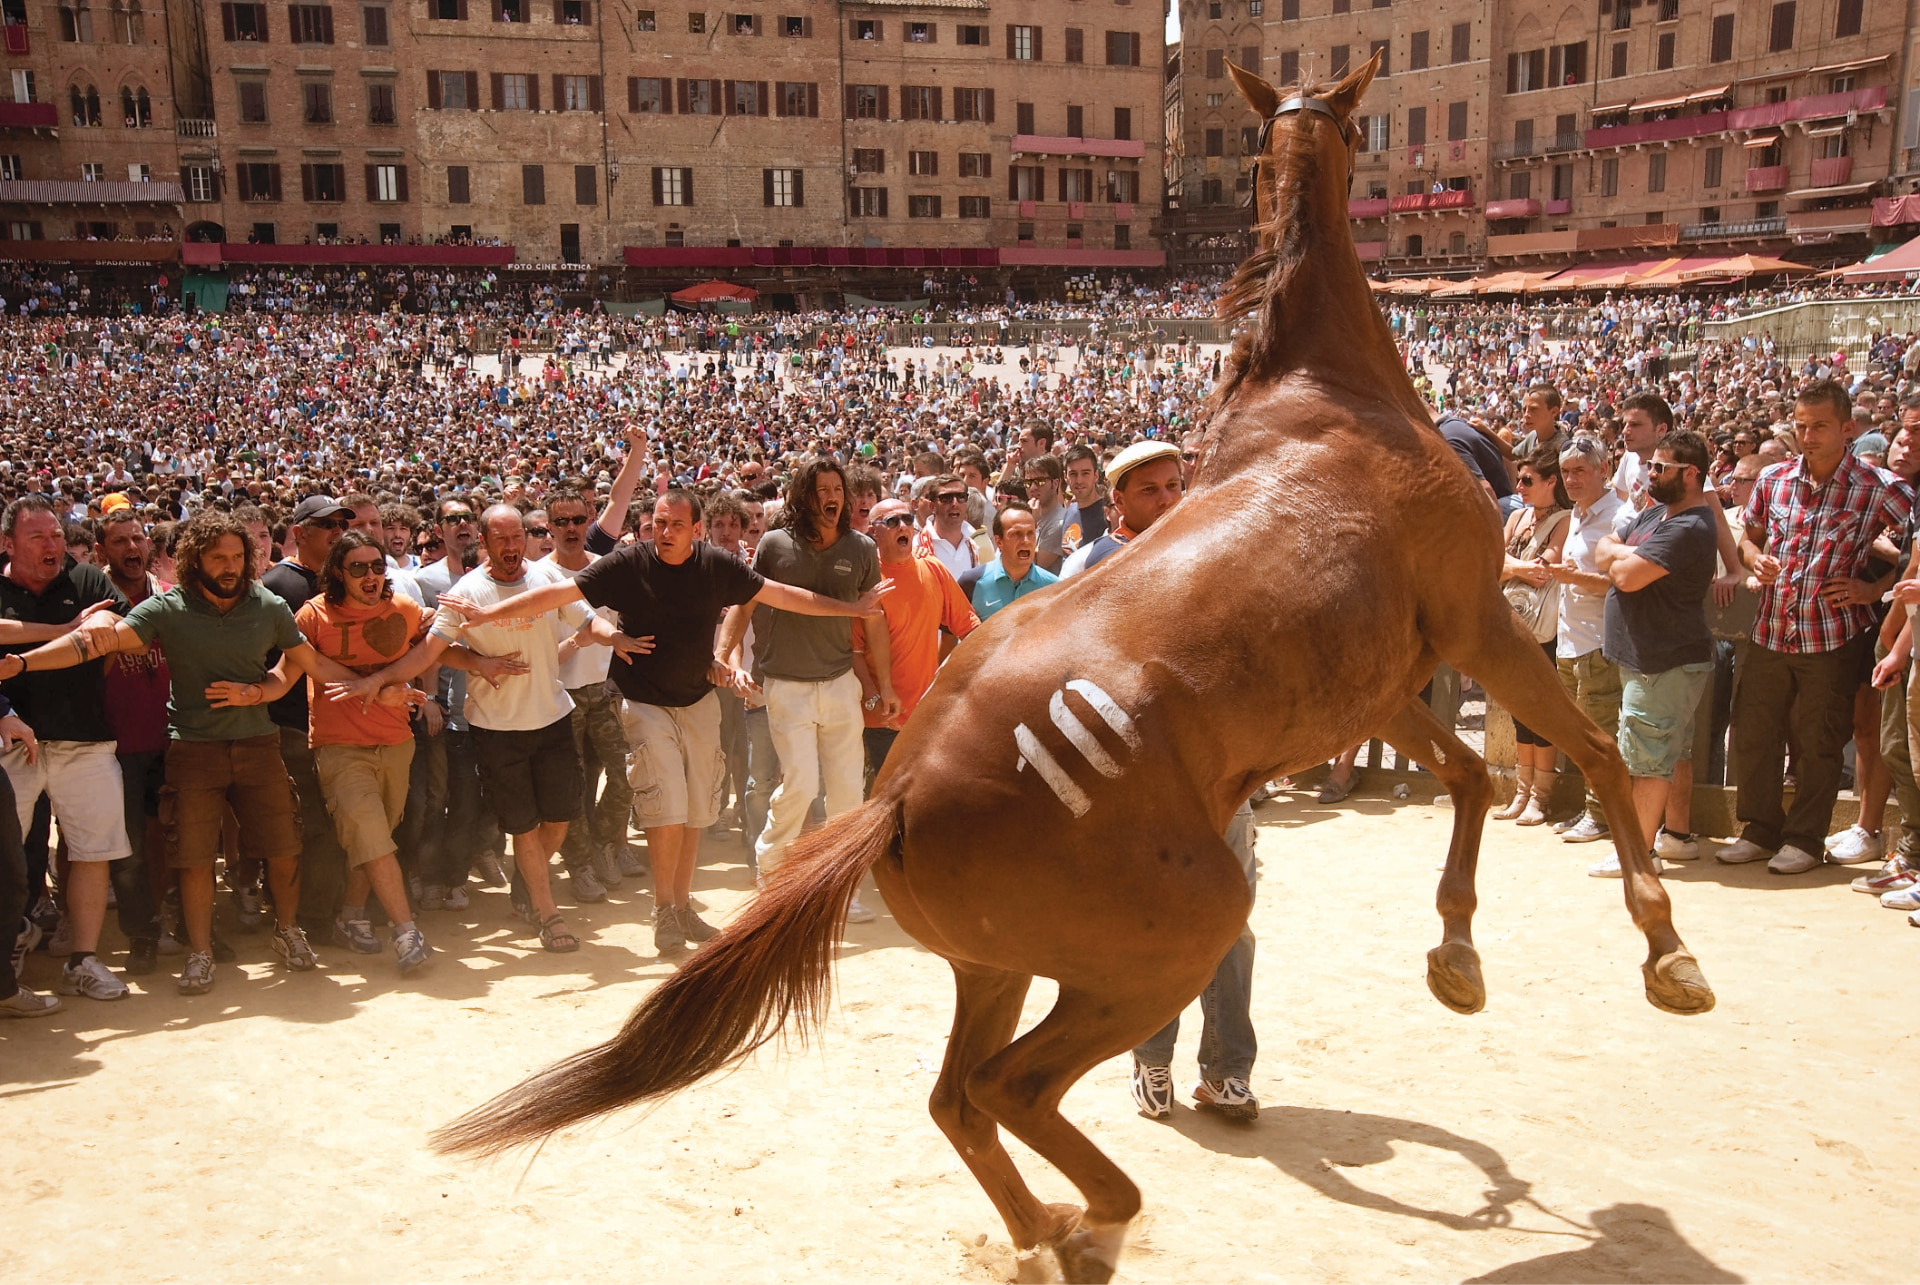 Palio fever in full swing